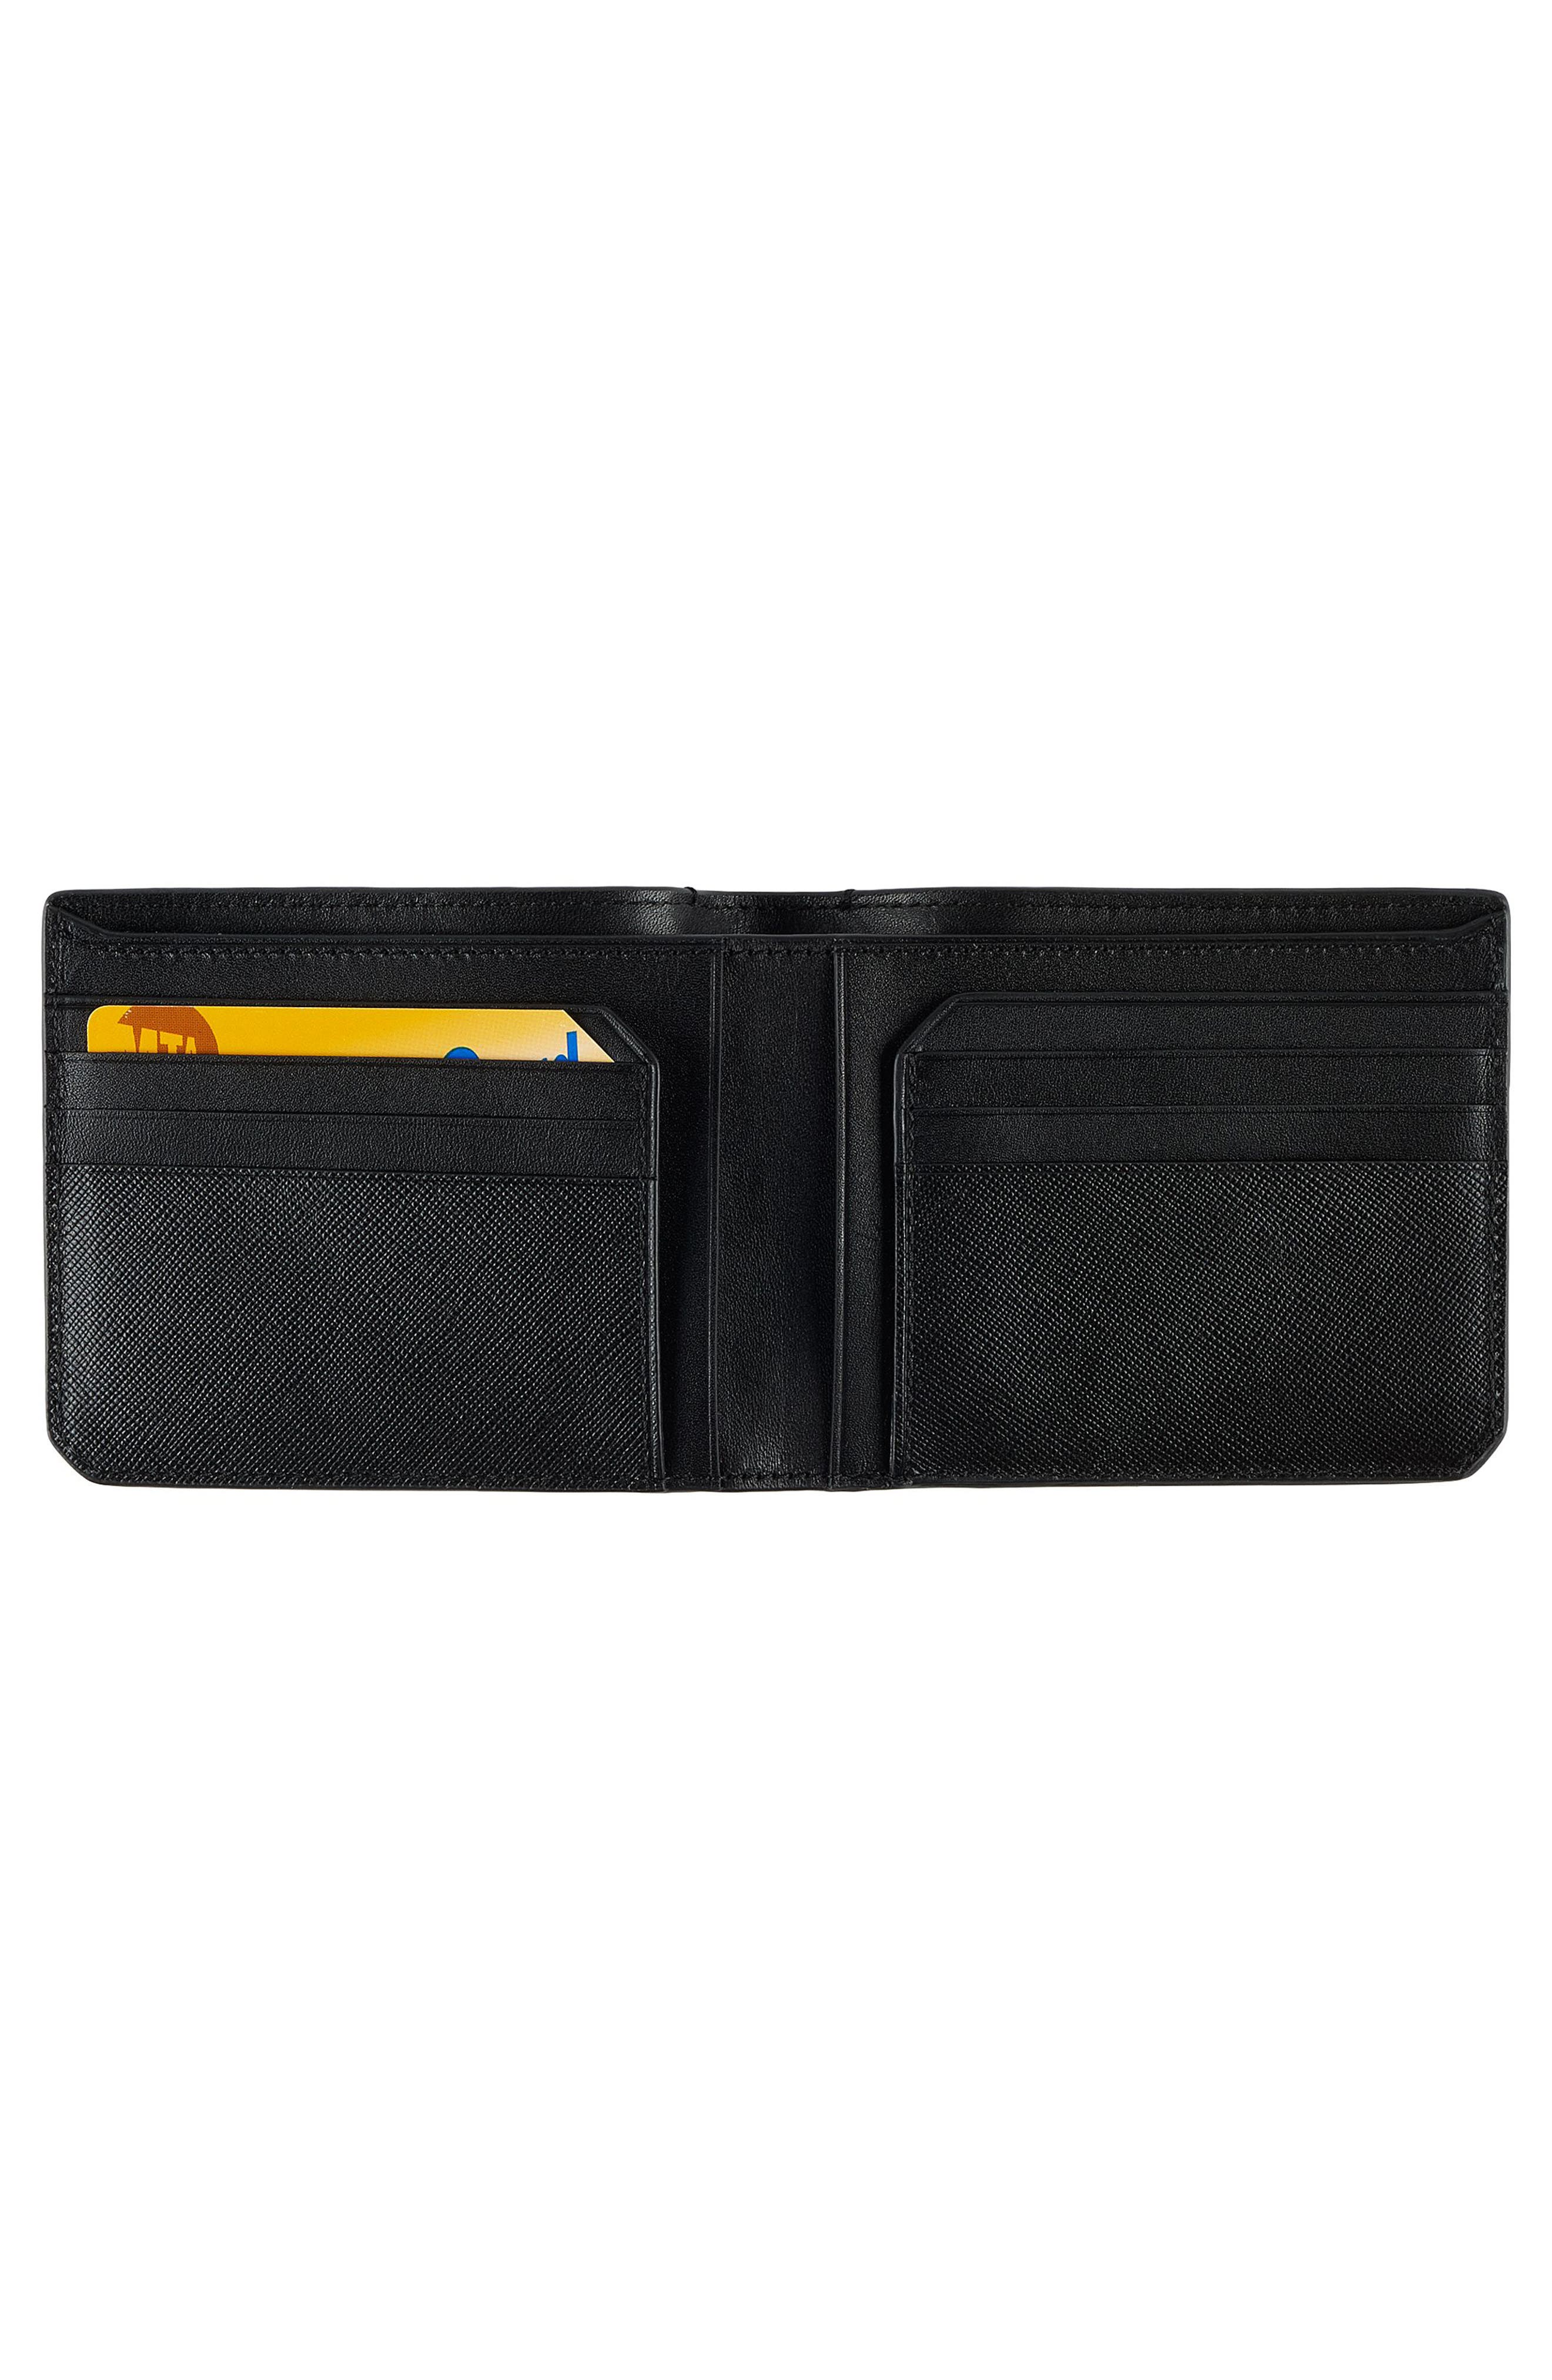 Leather Wallet,                             Alternate thumbnail 4, color,                             001